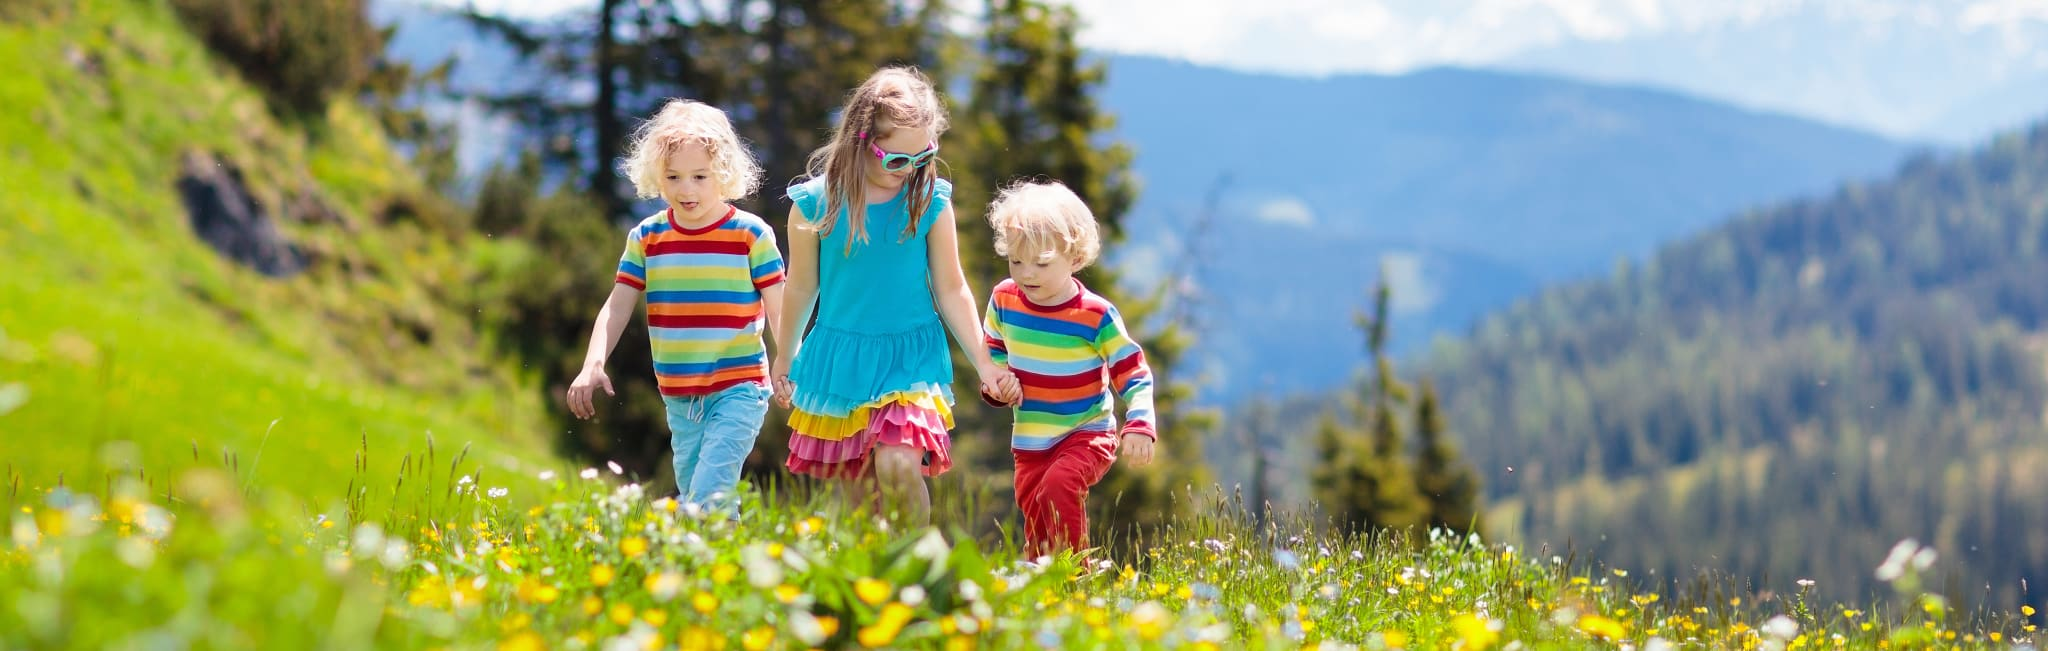 Family Vacations - Children Hiking in the Alps